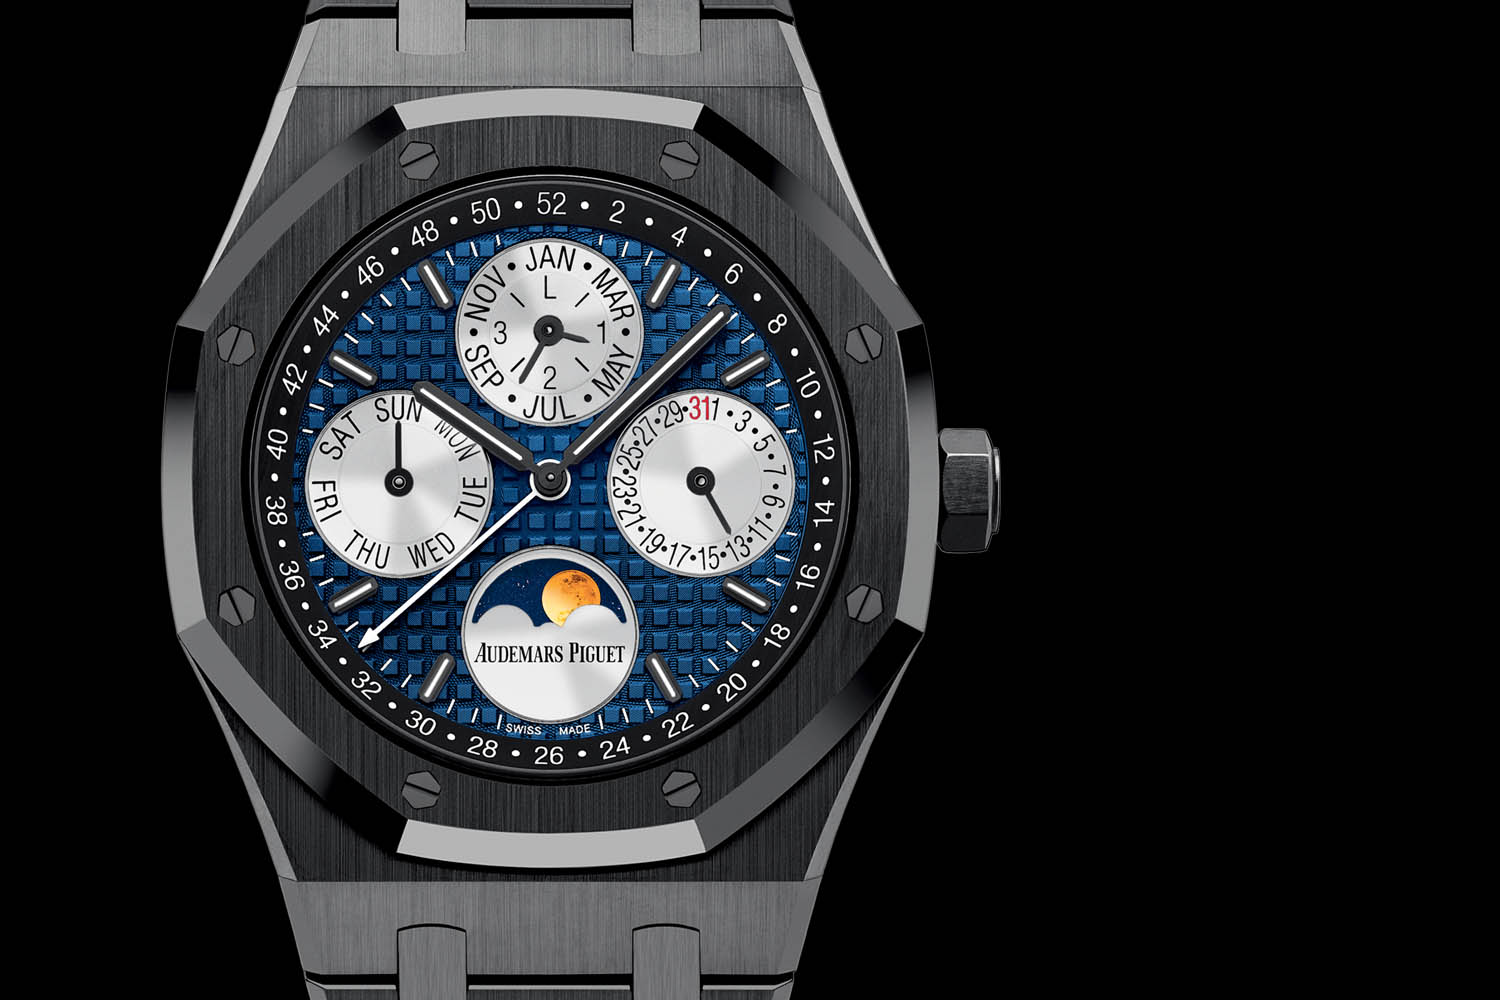 Audemars Piguet Royal Oak Perpetual Calendar ONLY Watch Piece Unique